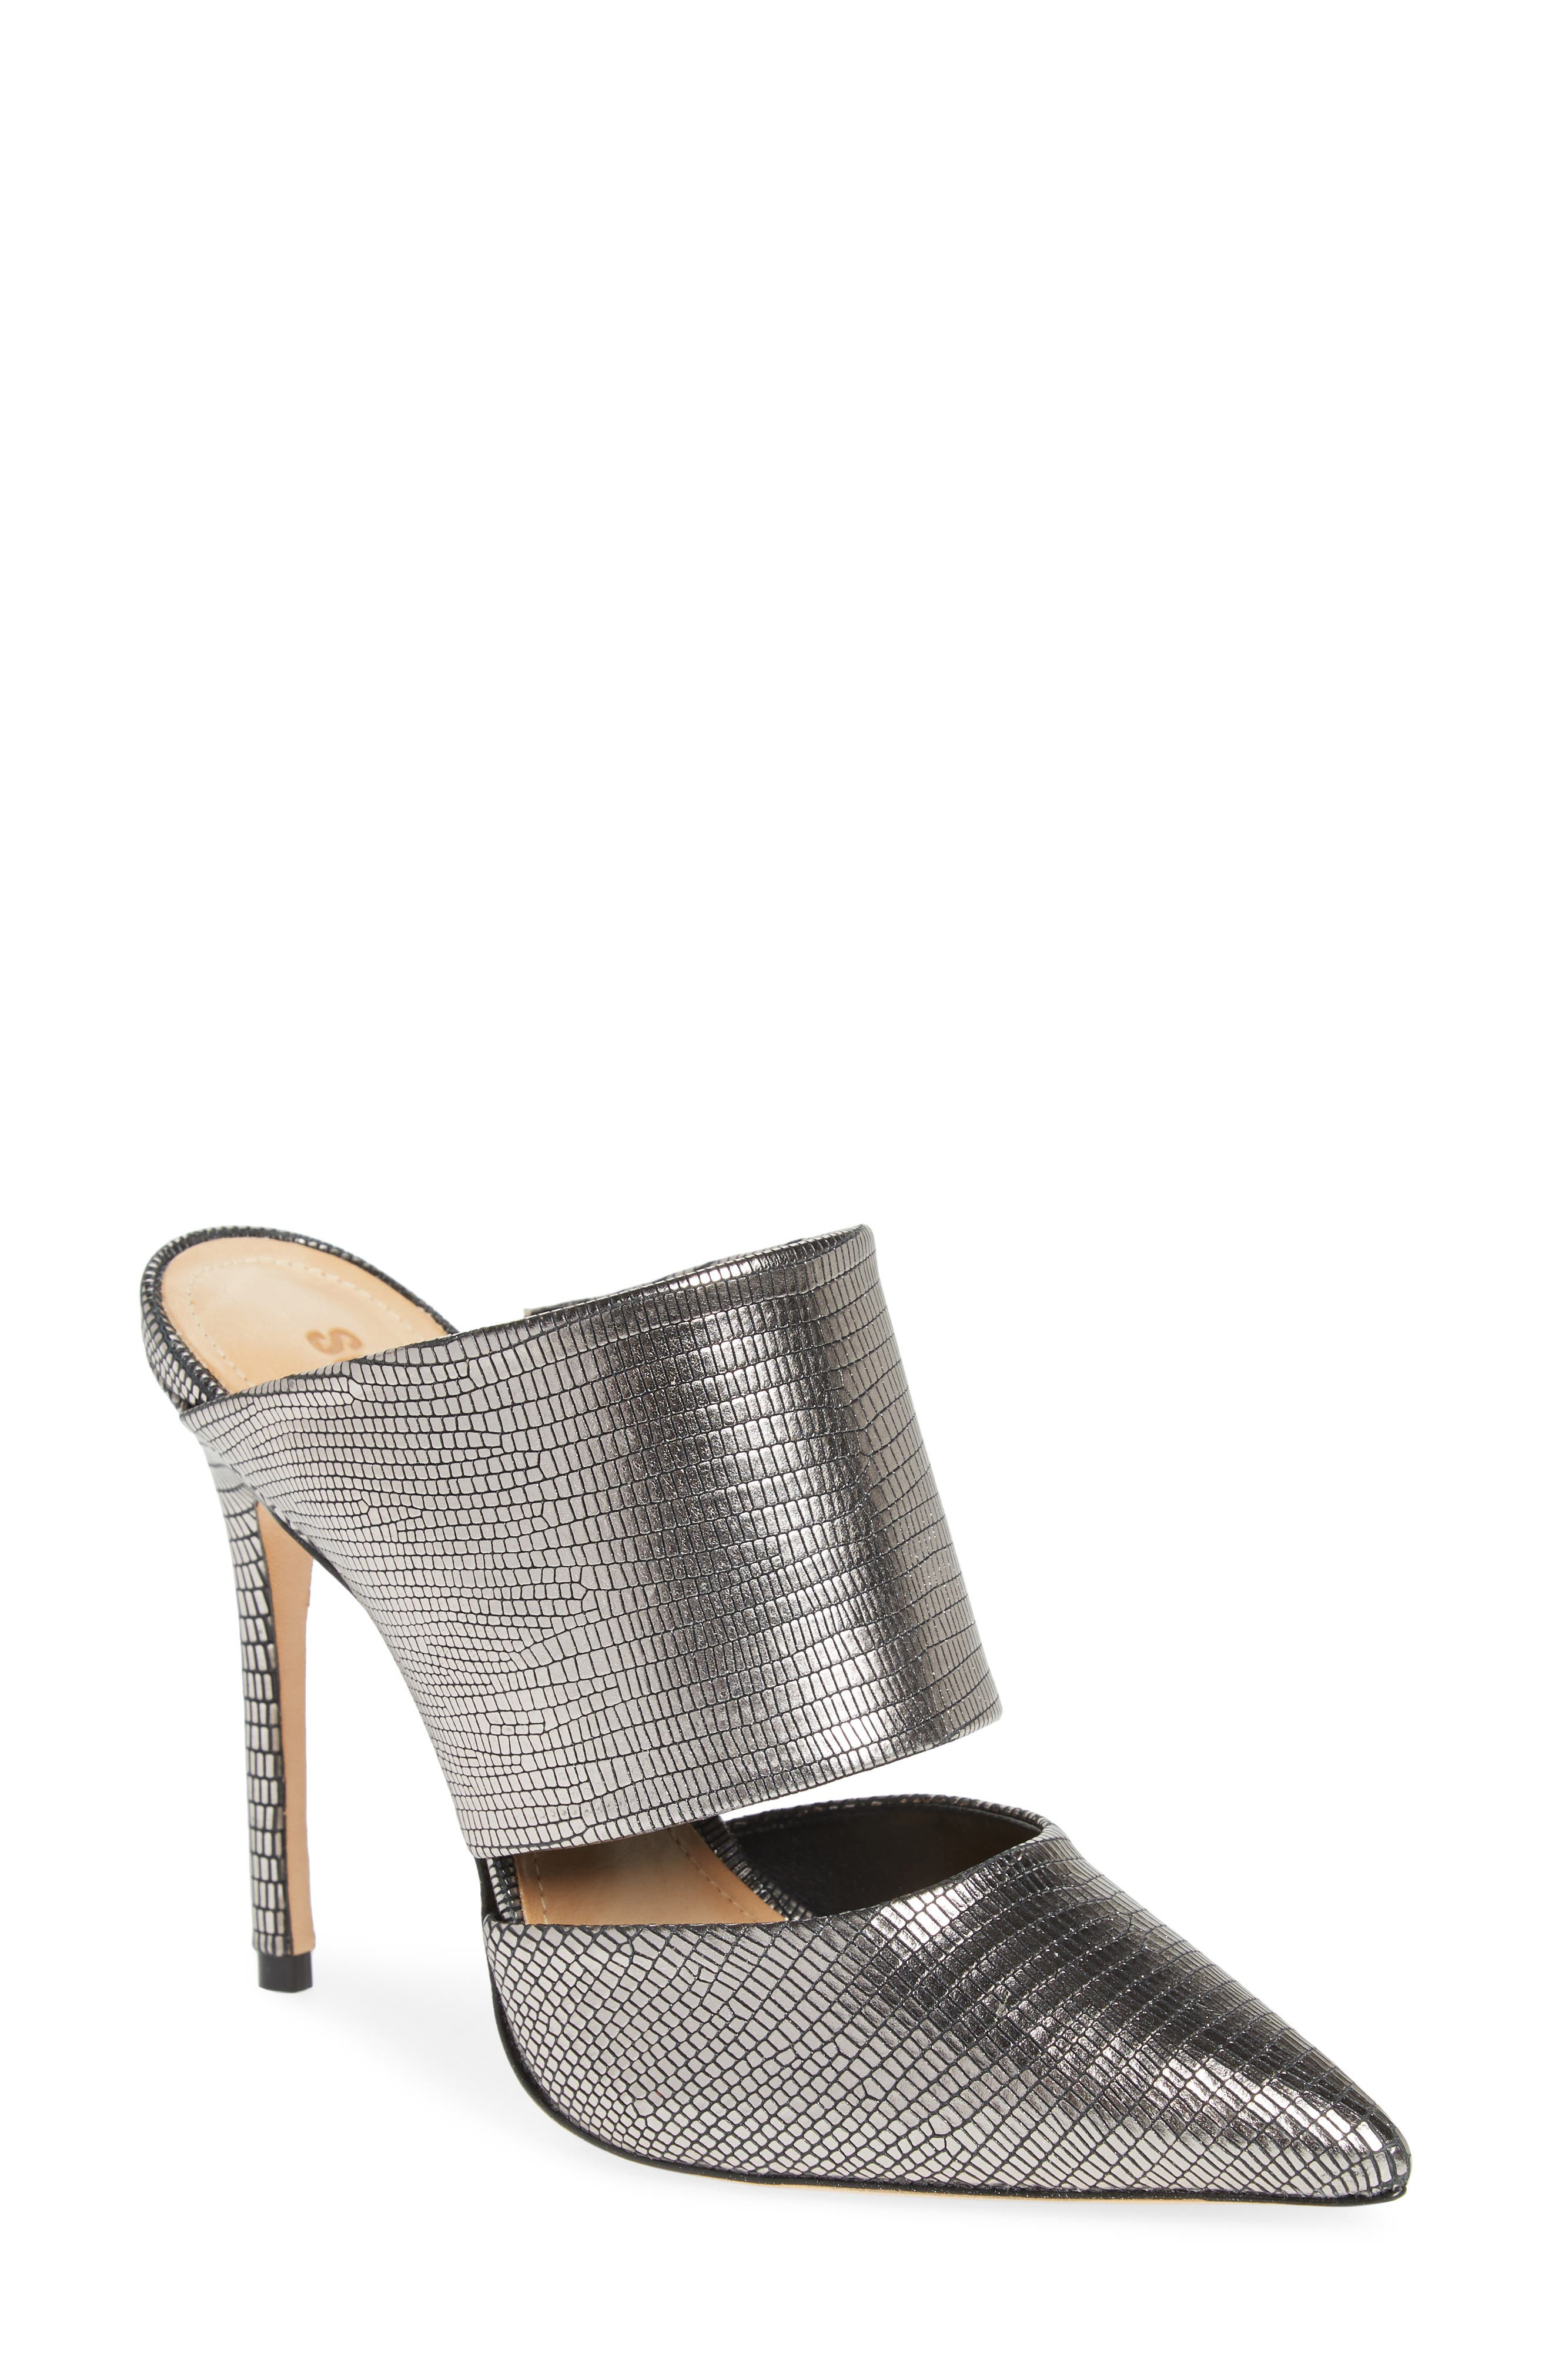 Quereda Cutout Mule,                         Main,                         color, 040